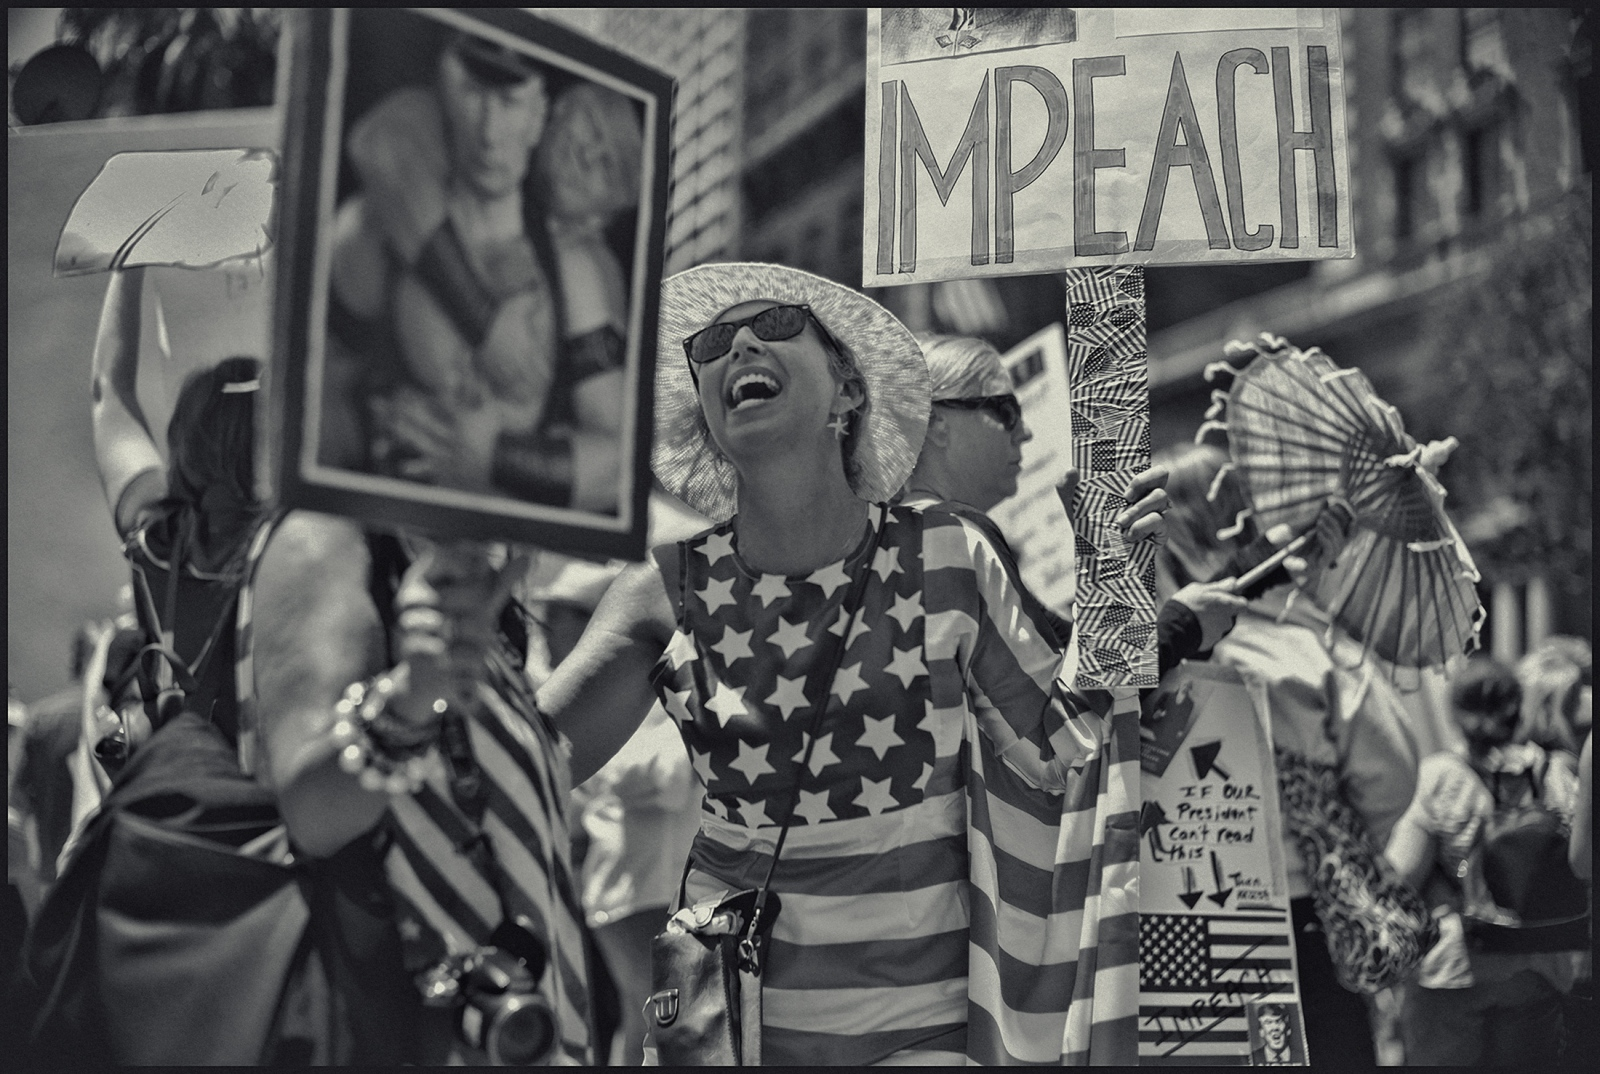 Impeach protest. July 4th, 2017 Los Angeles. CA.